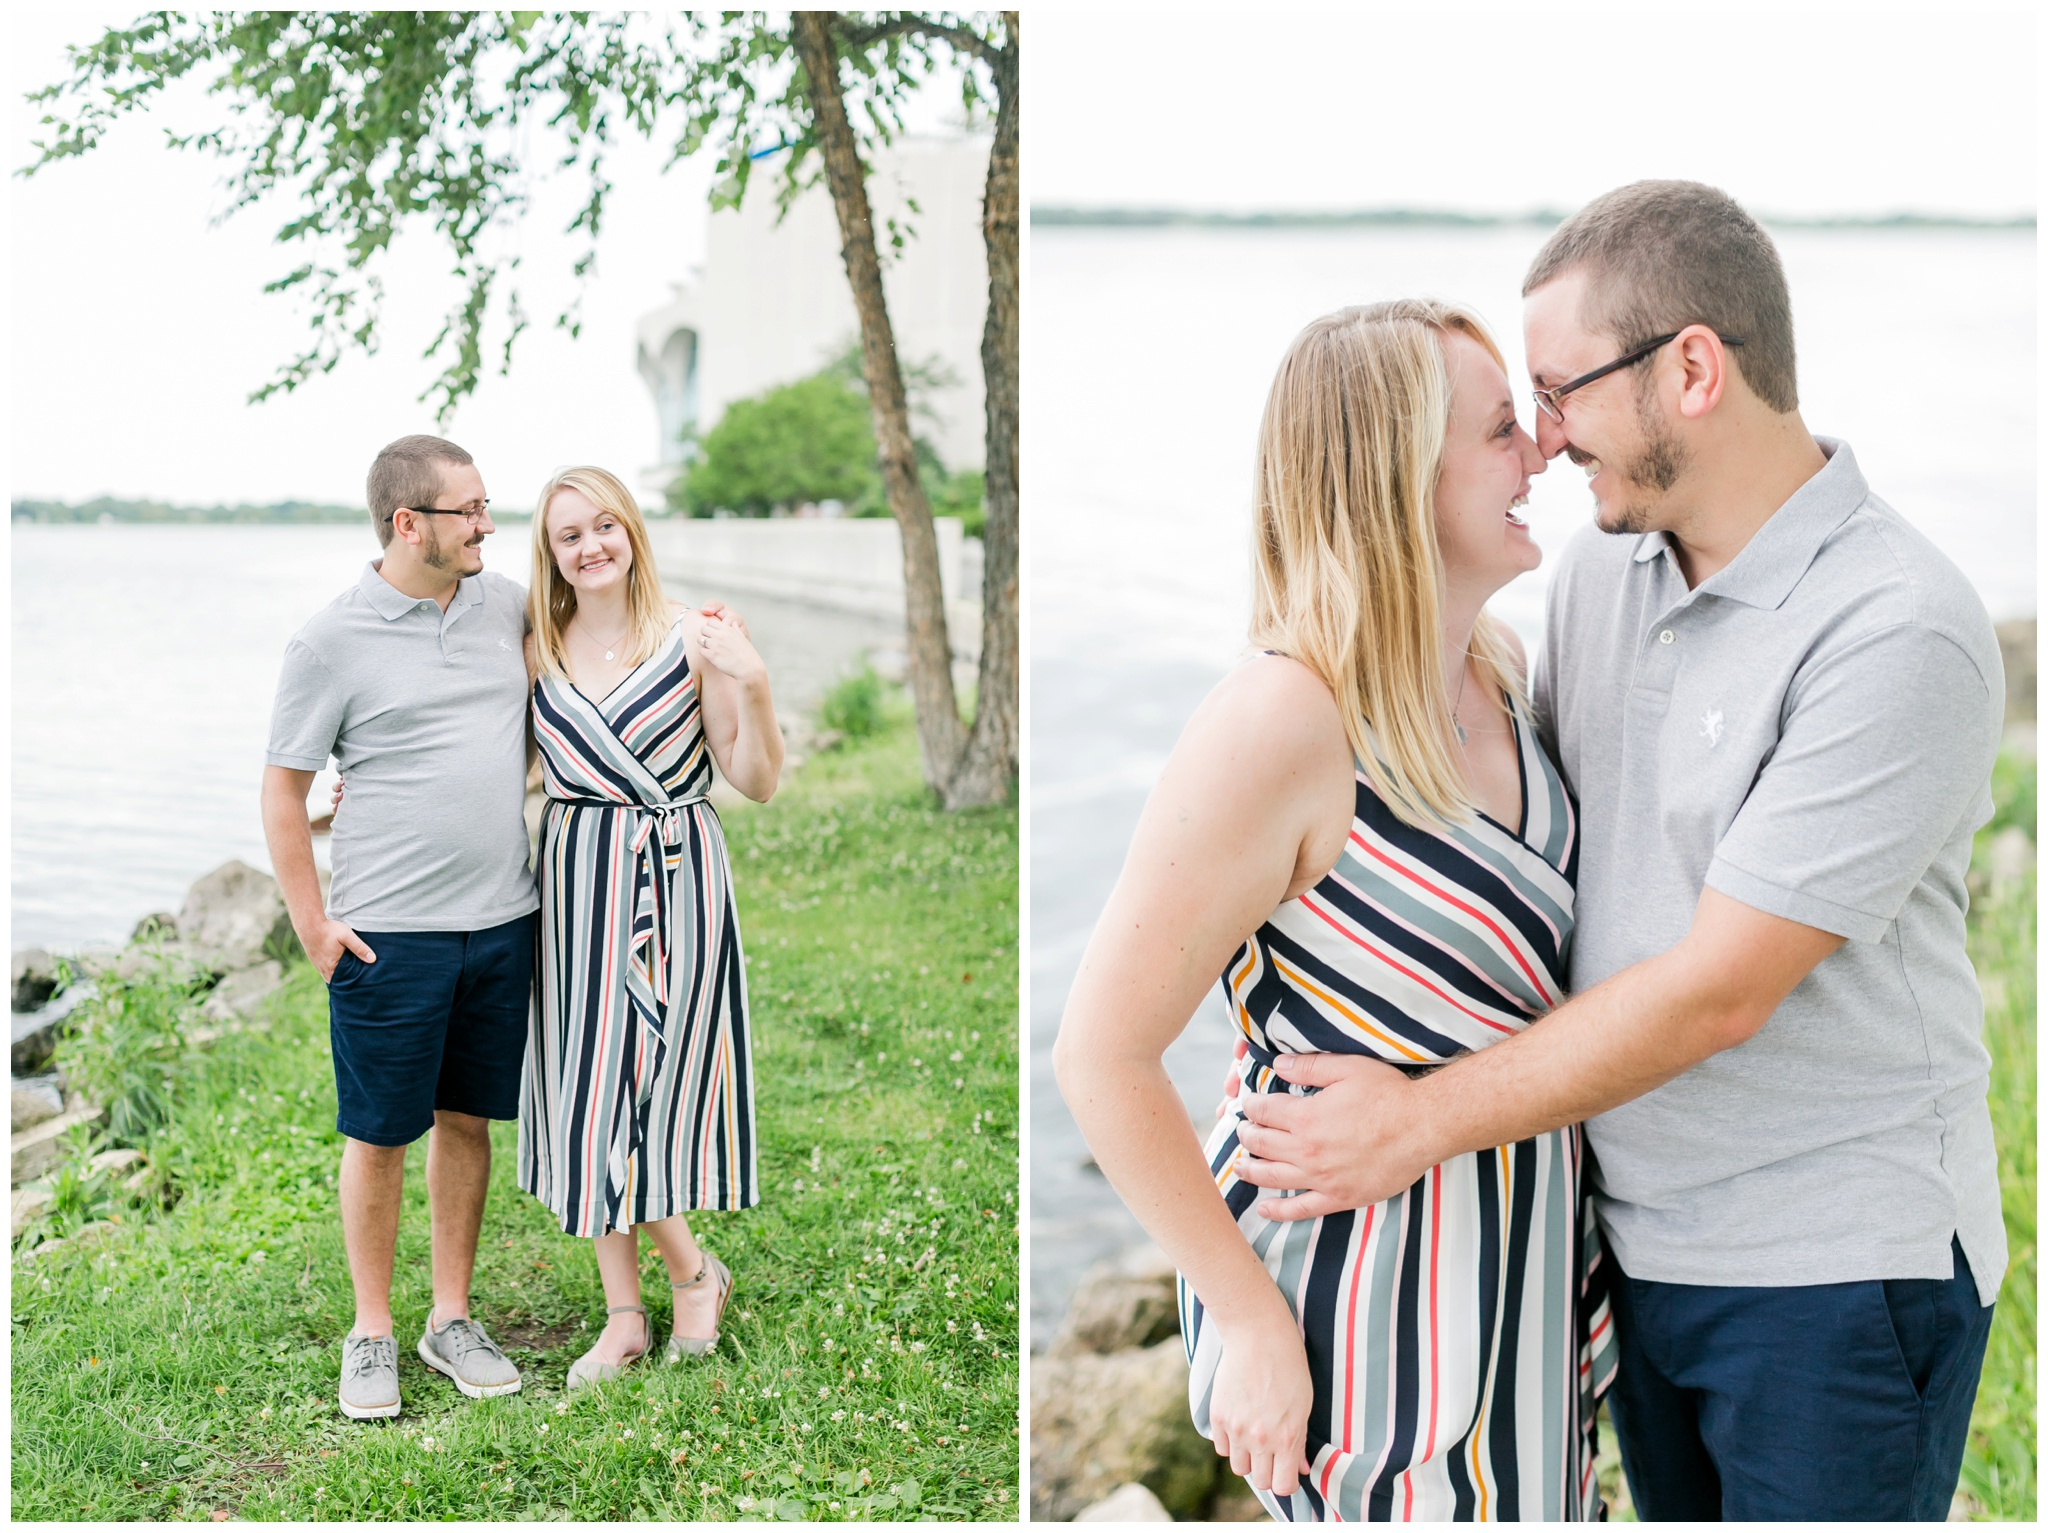 Downtown_madison_wisconsin_engagement_session_4214.jpg